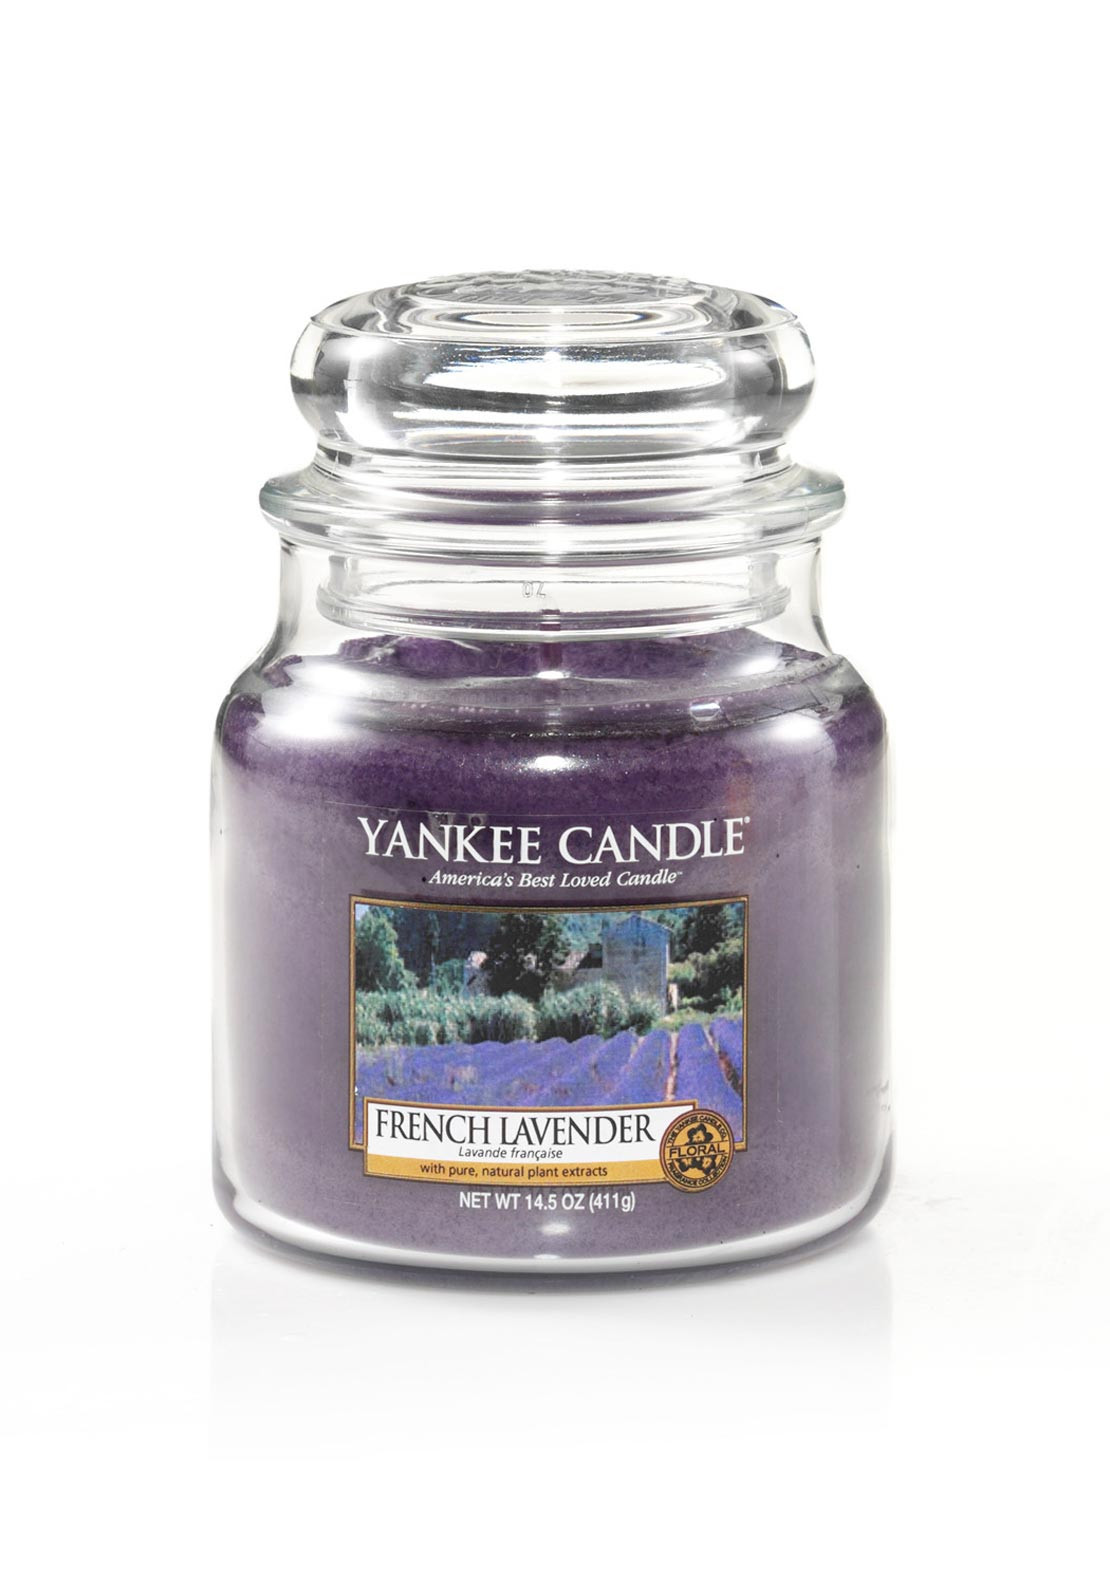 Yankee Candle Medium Classic Jar, French Lavender